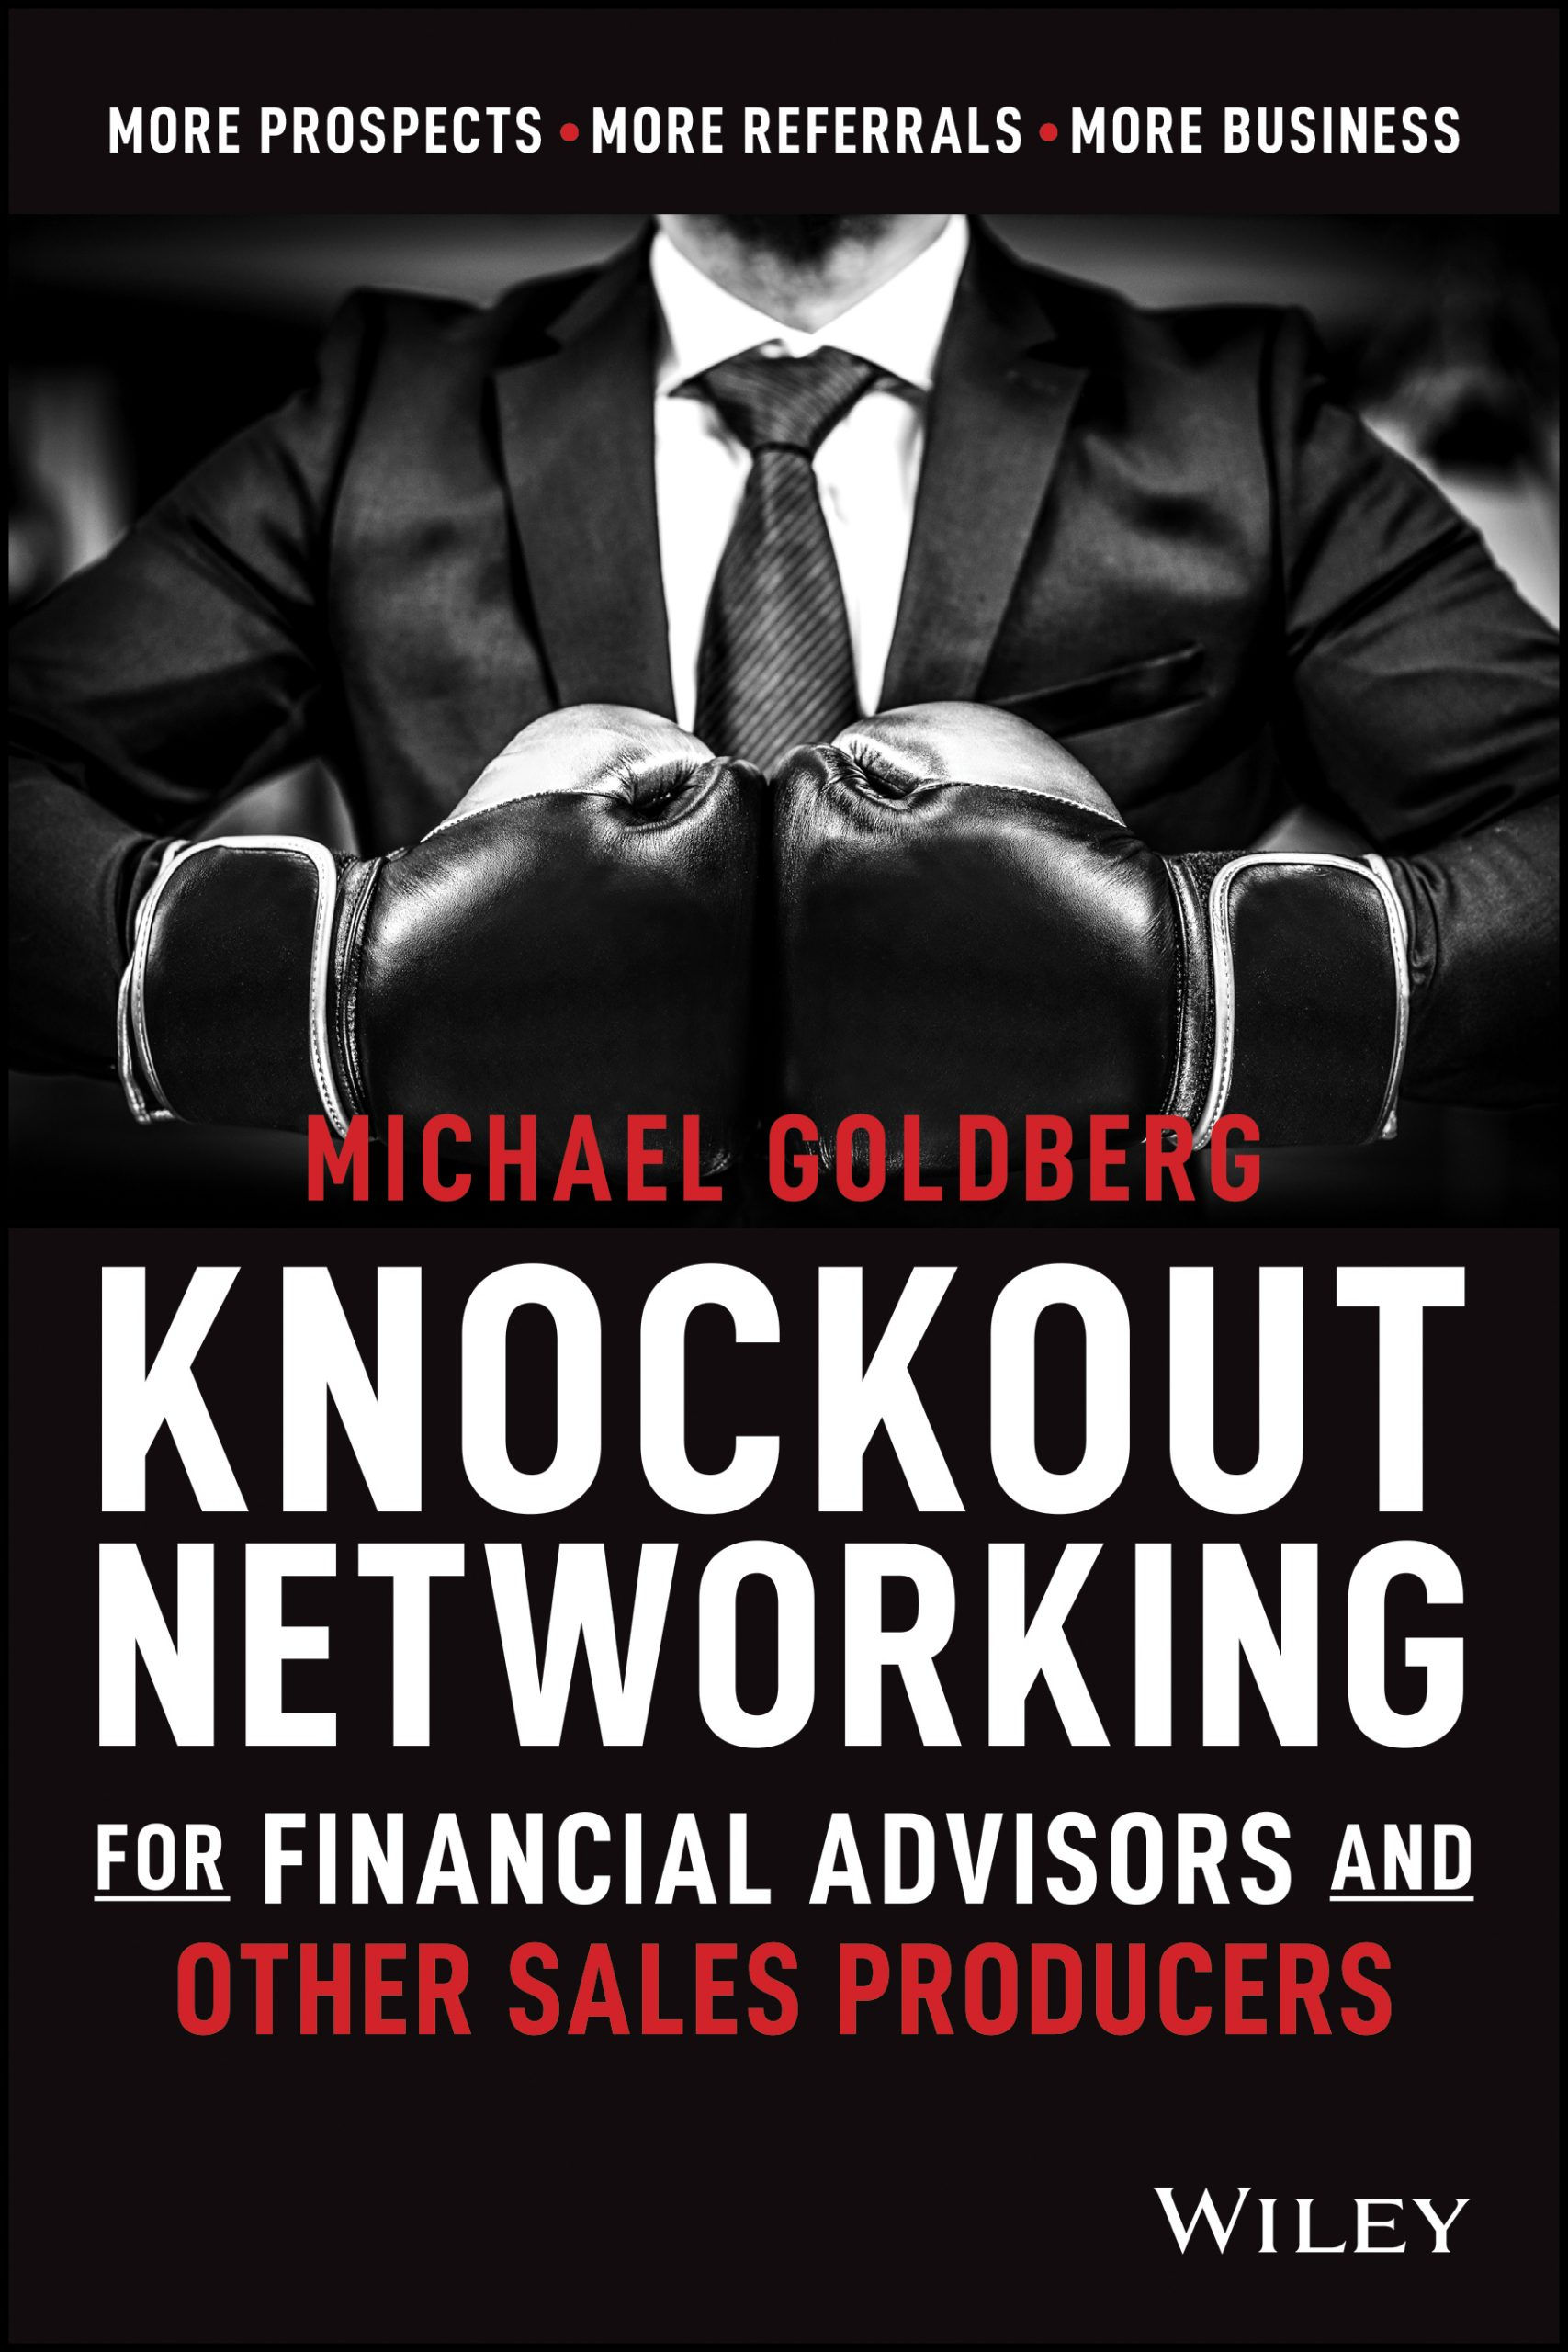 books for networking by Michael Goldberg, Knock Out Networking